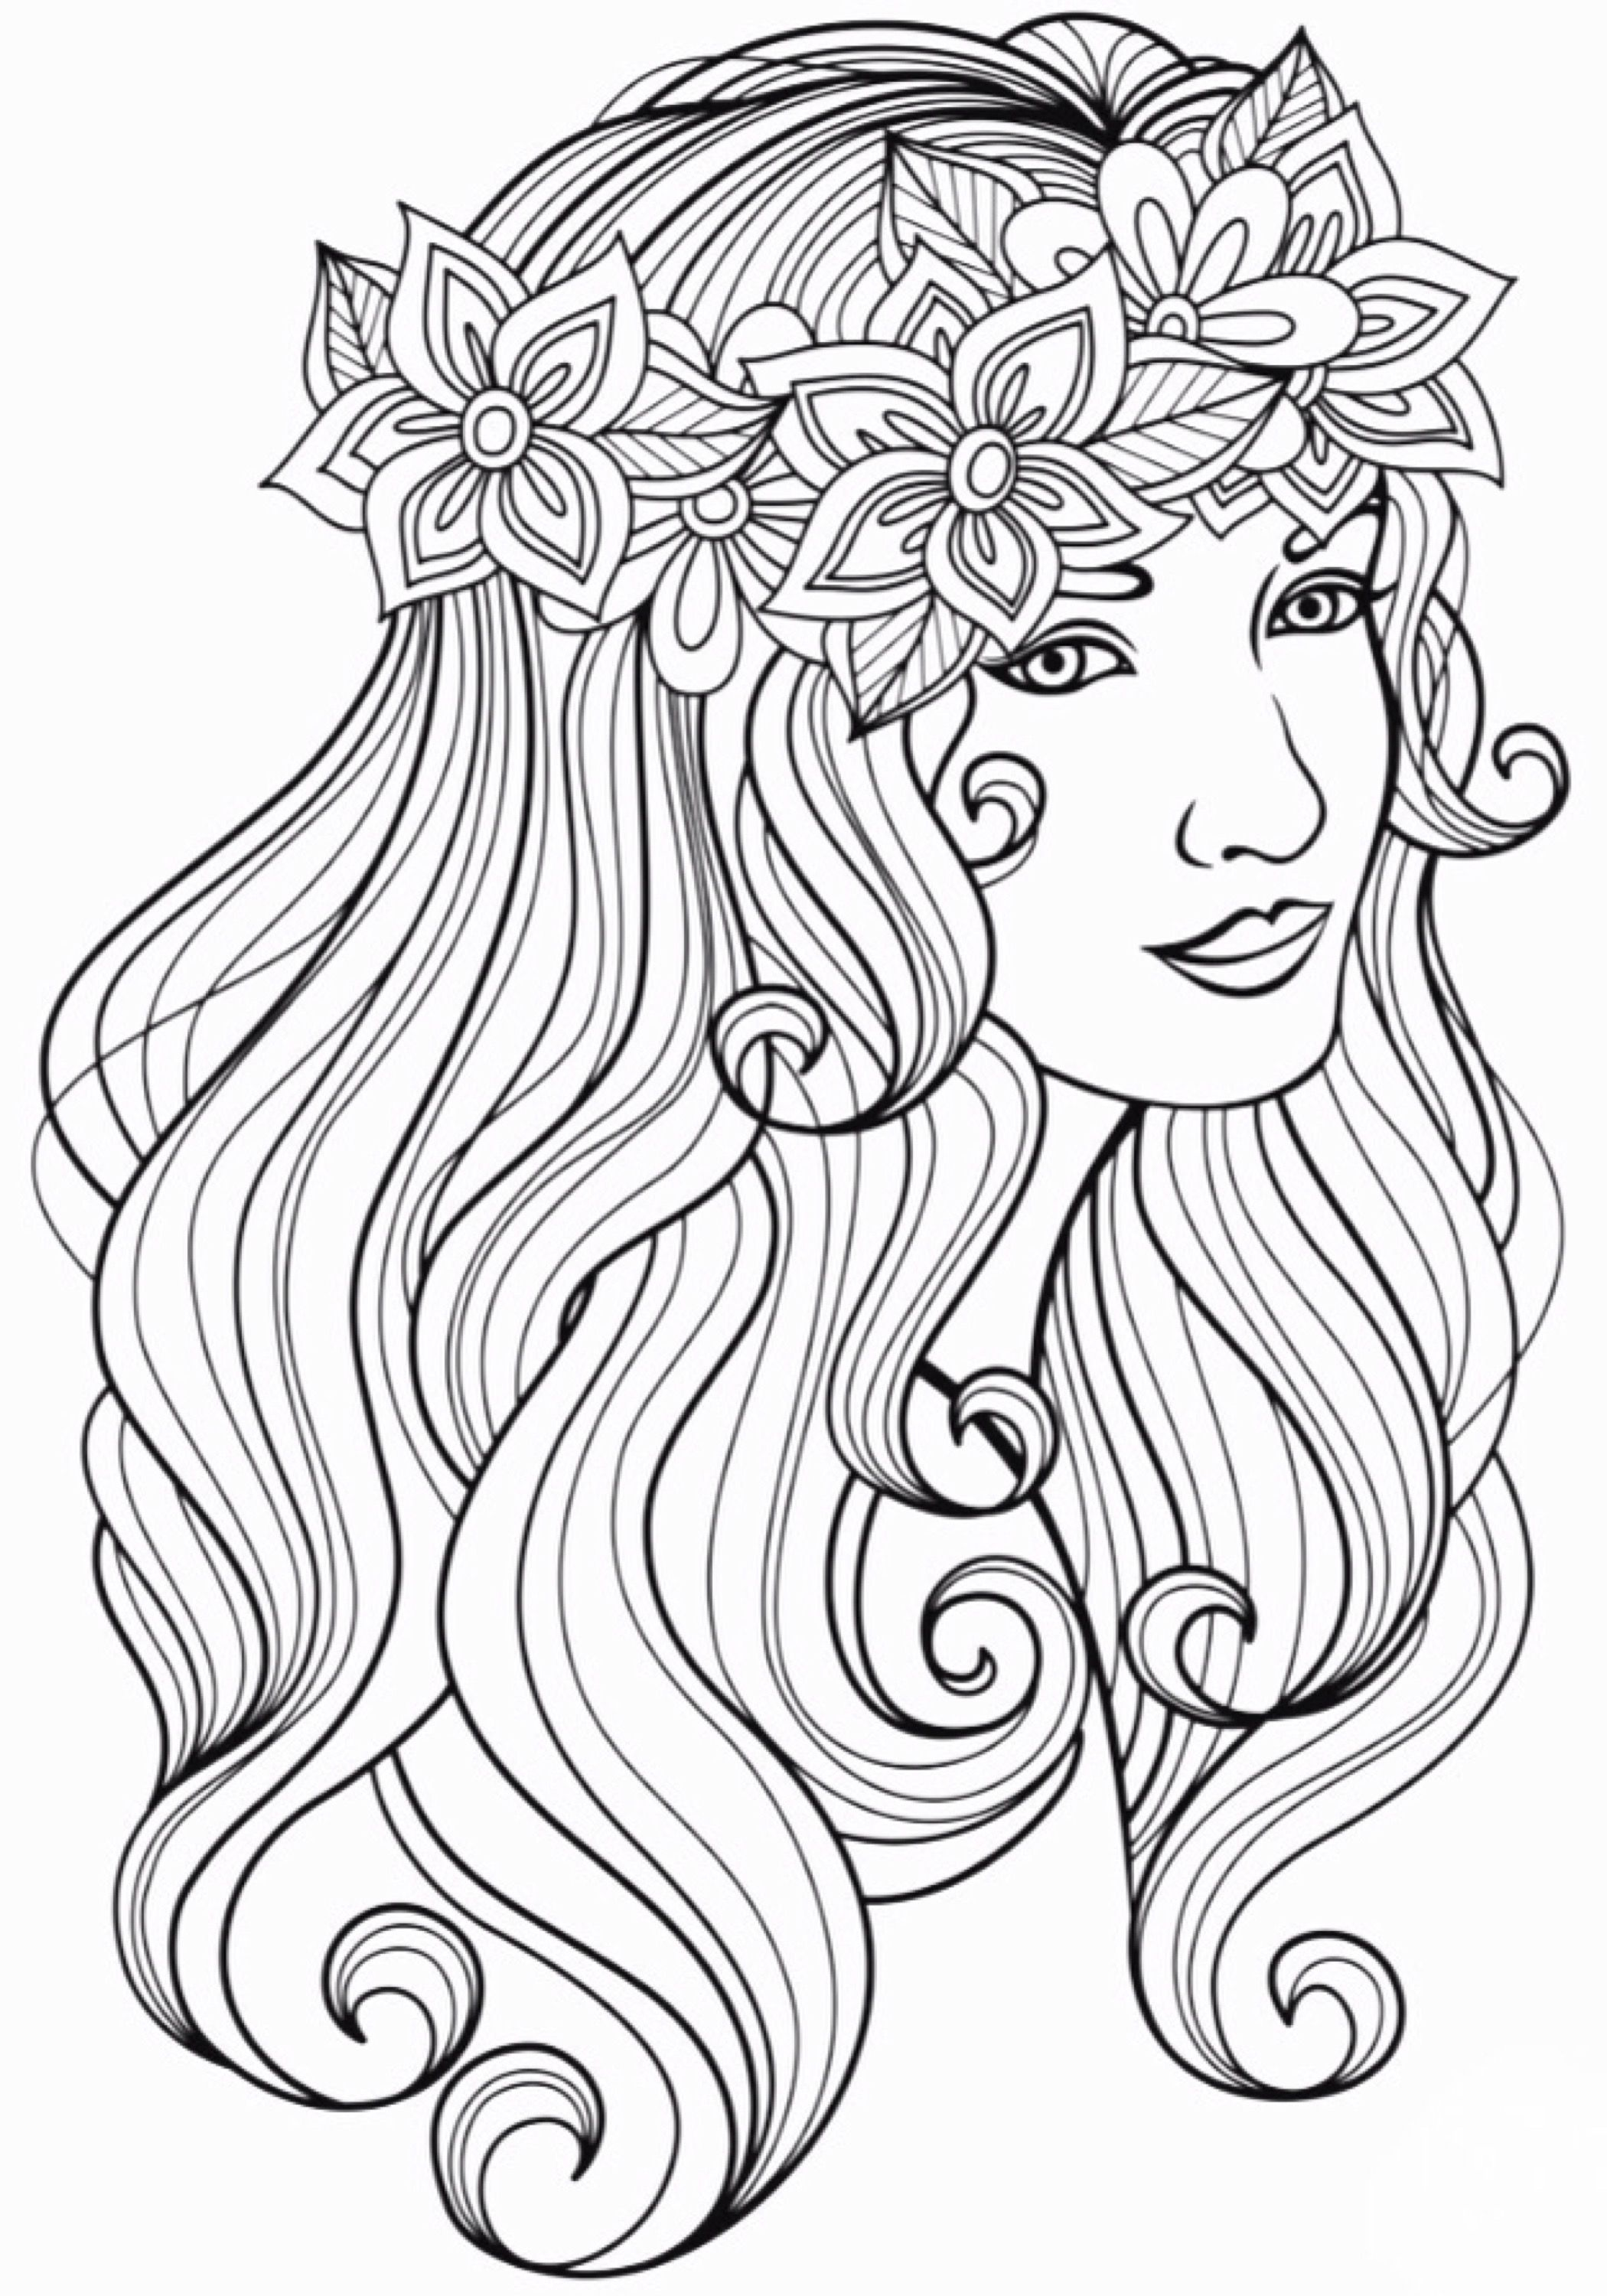 Coloring Pages Disney Junior Lovely Erica Kepler Small Potatoes